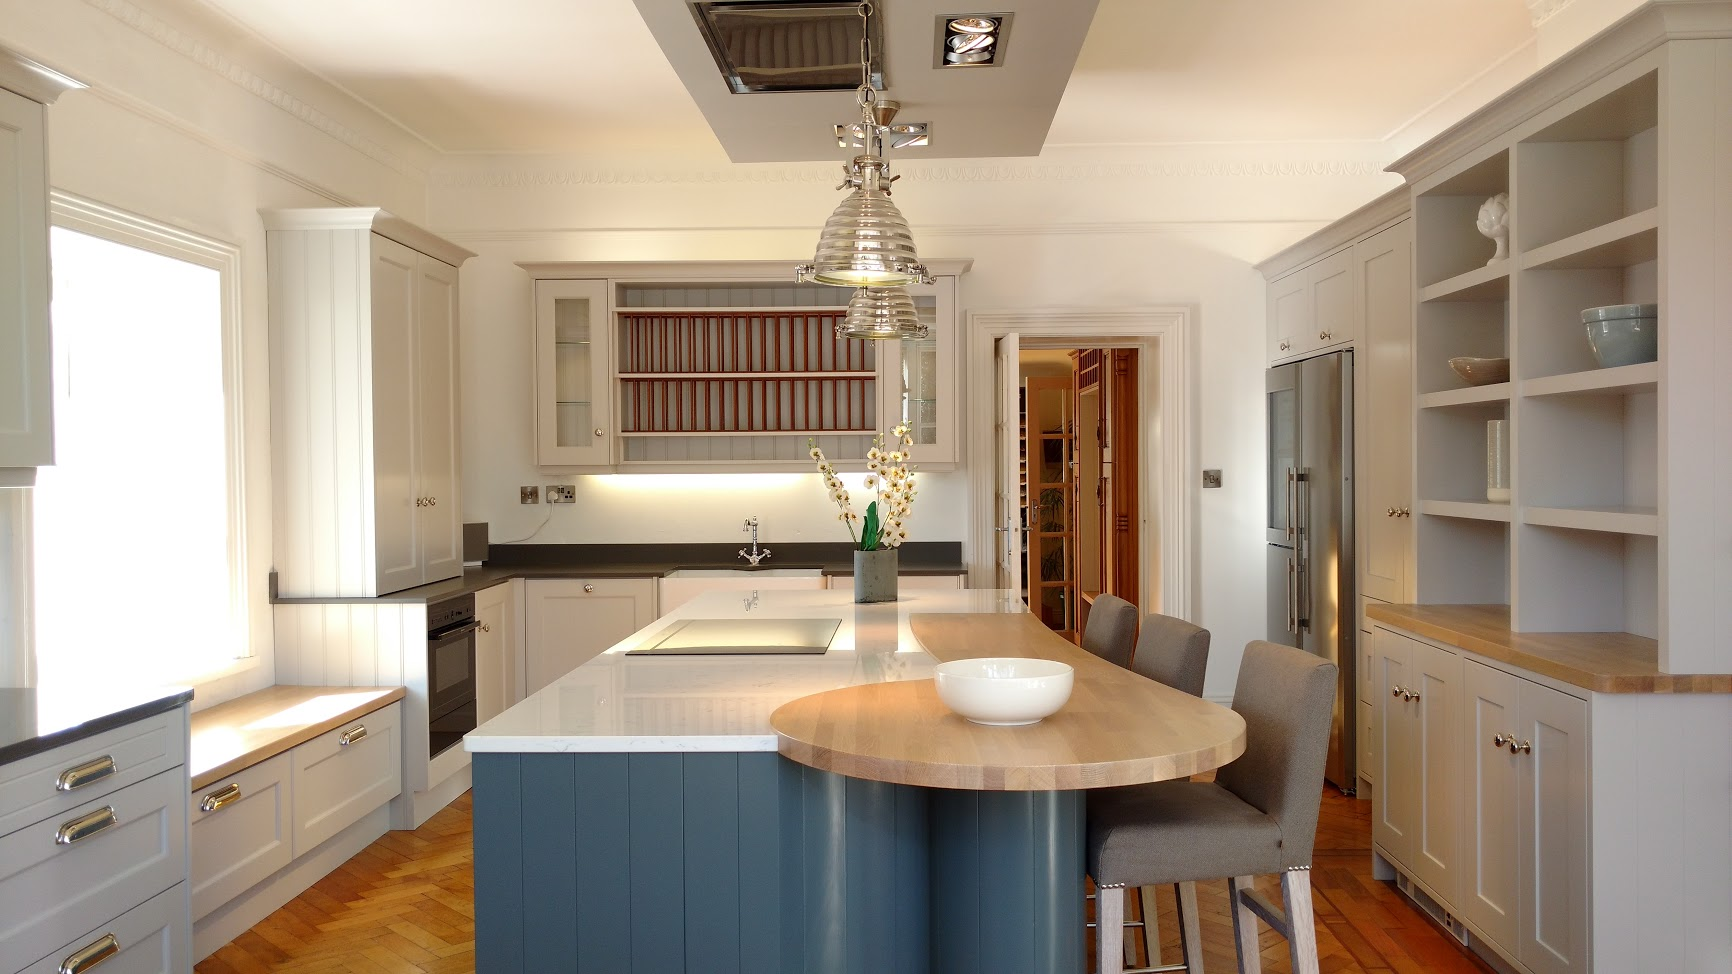 Painted Grey Kitchen & Navy Painted Island